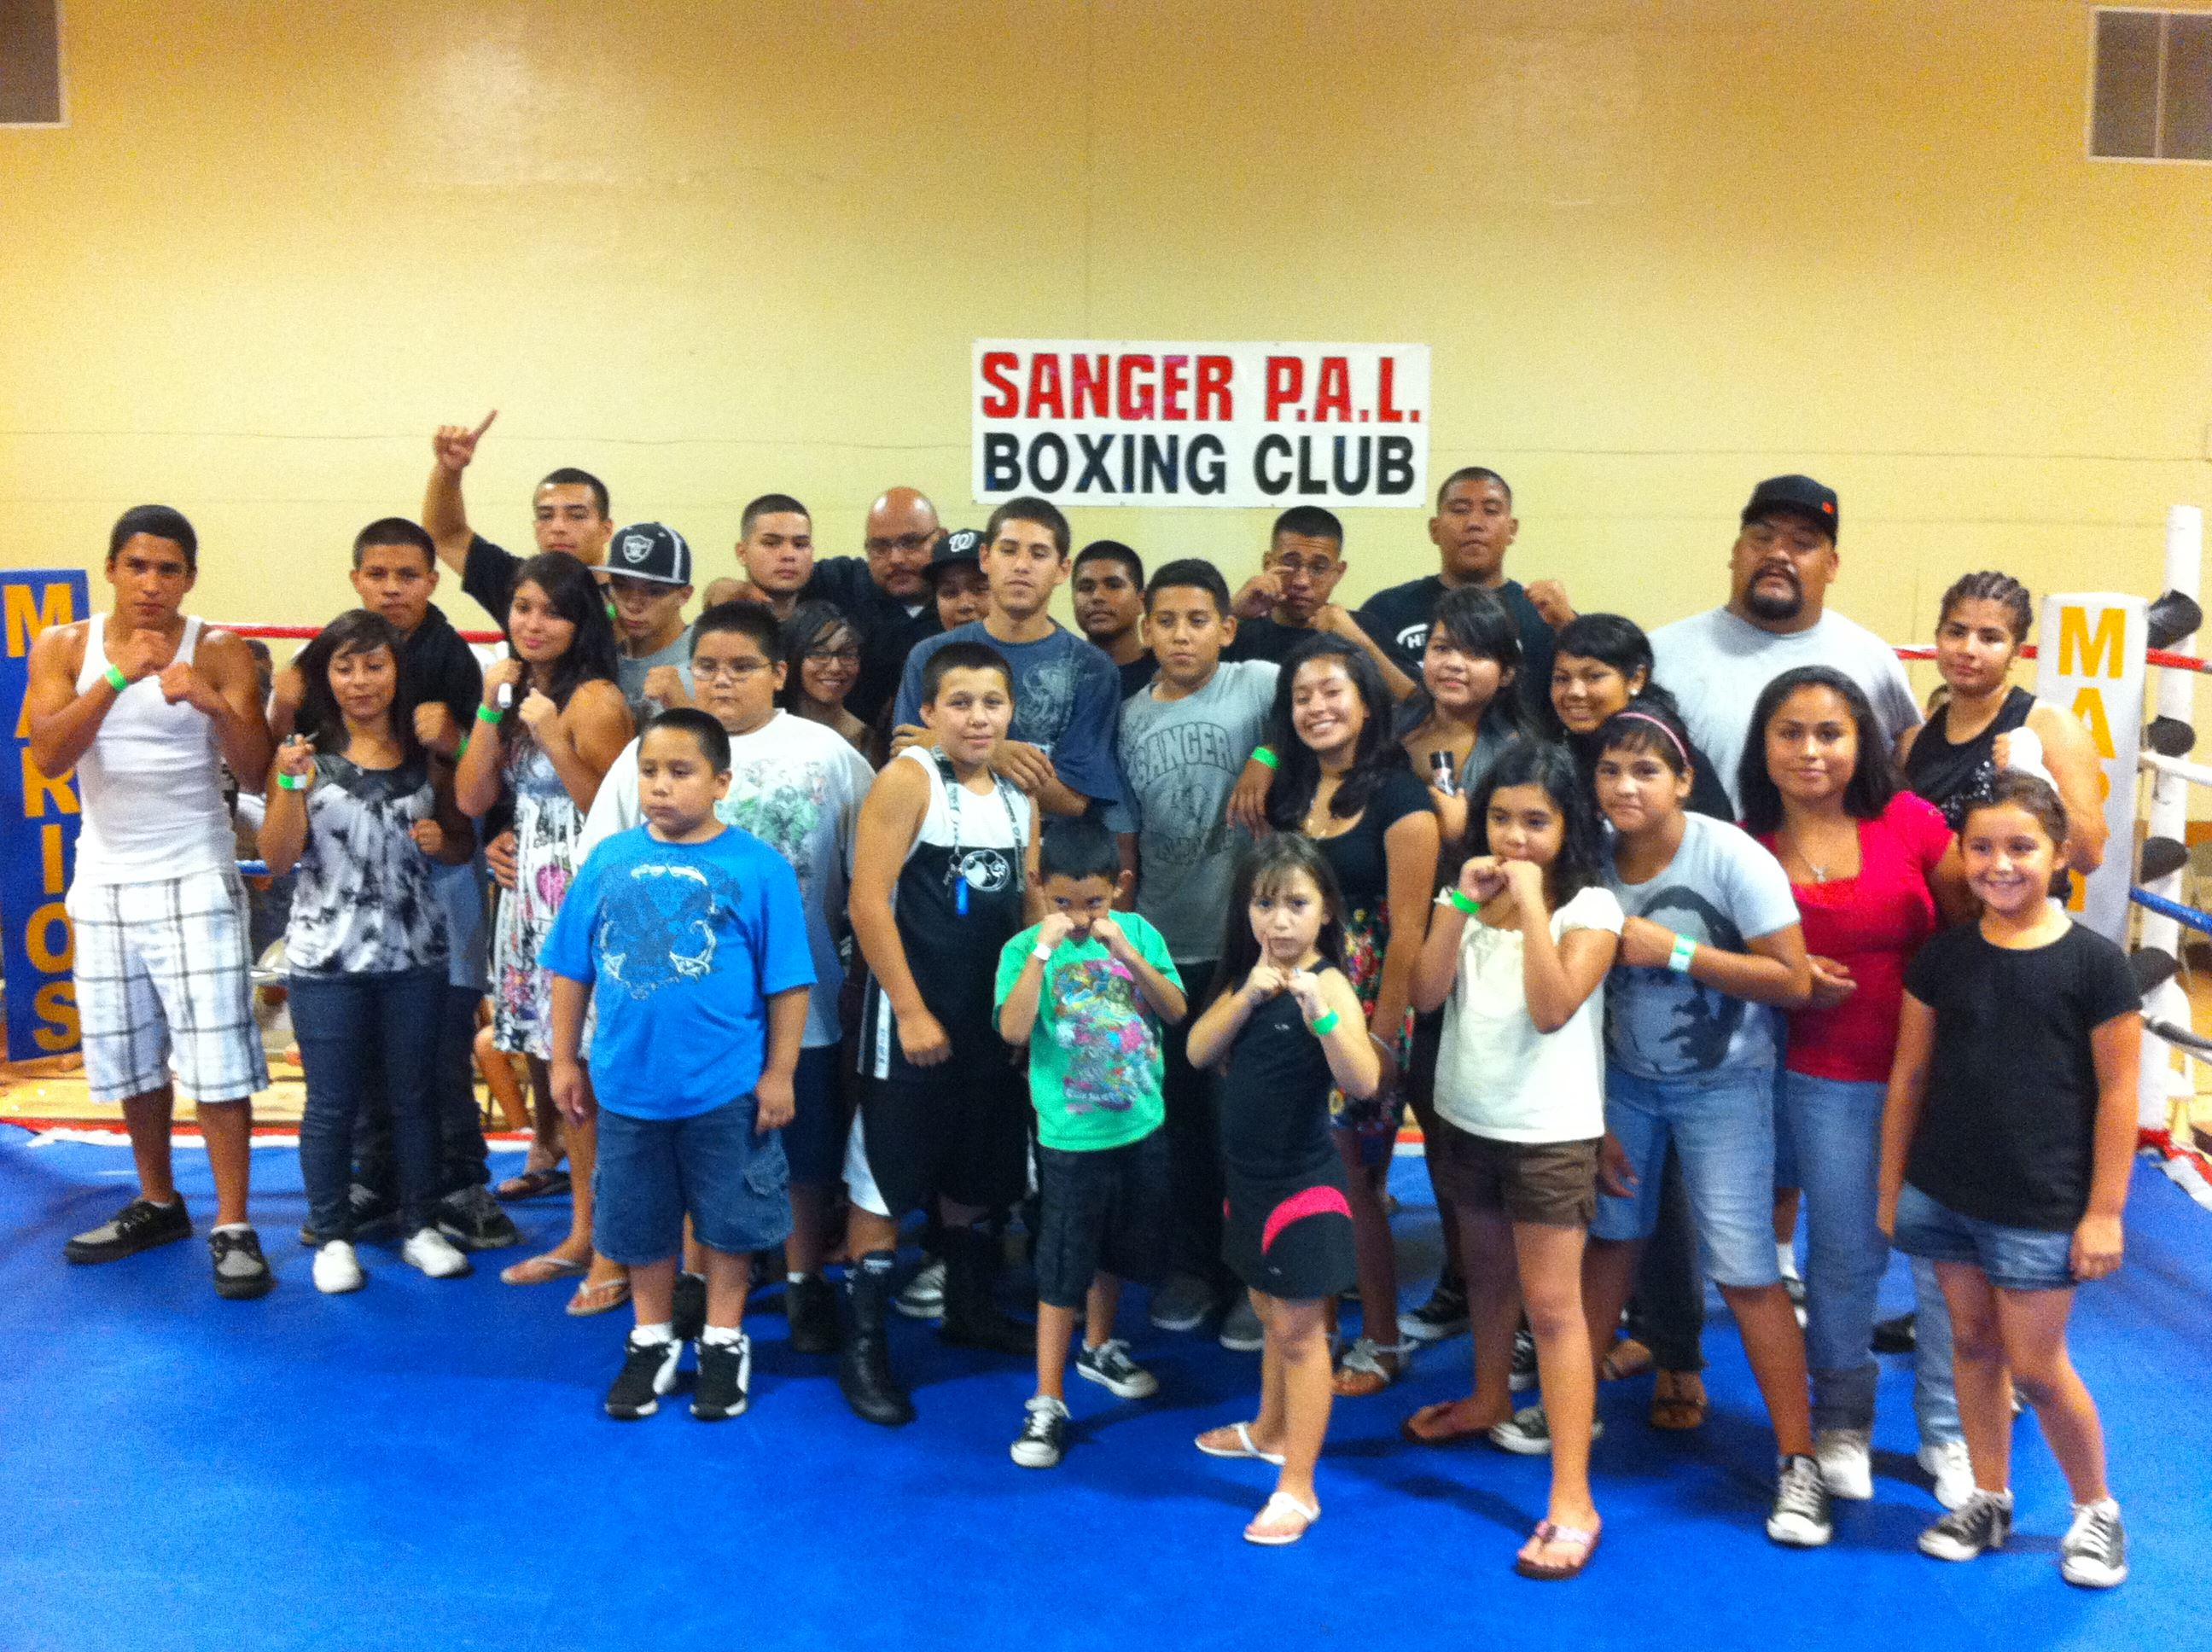 Sanger Team July 24 , 2010